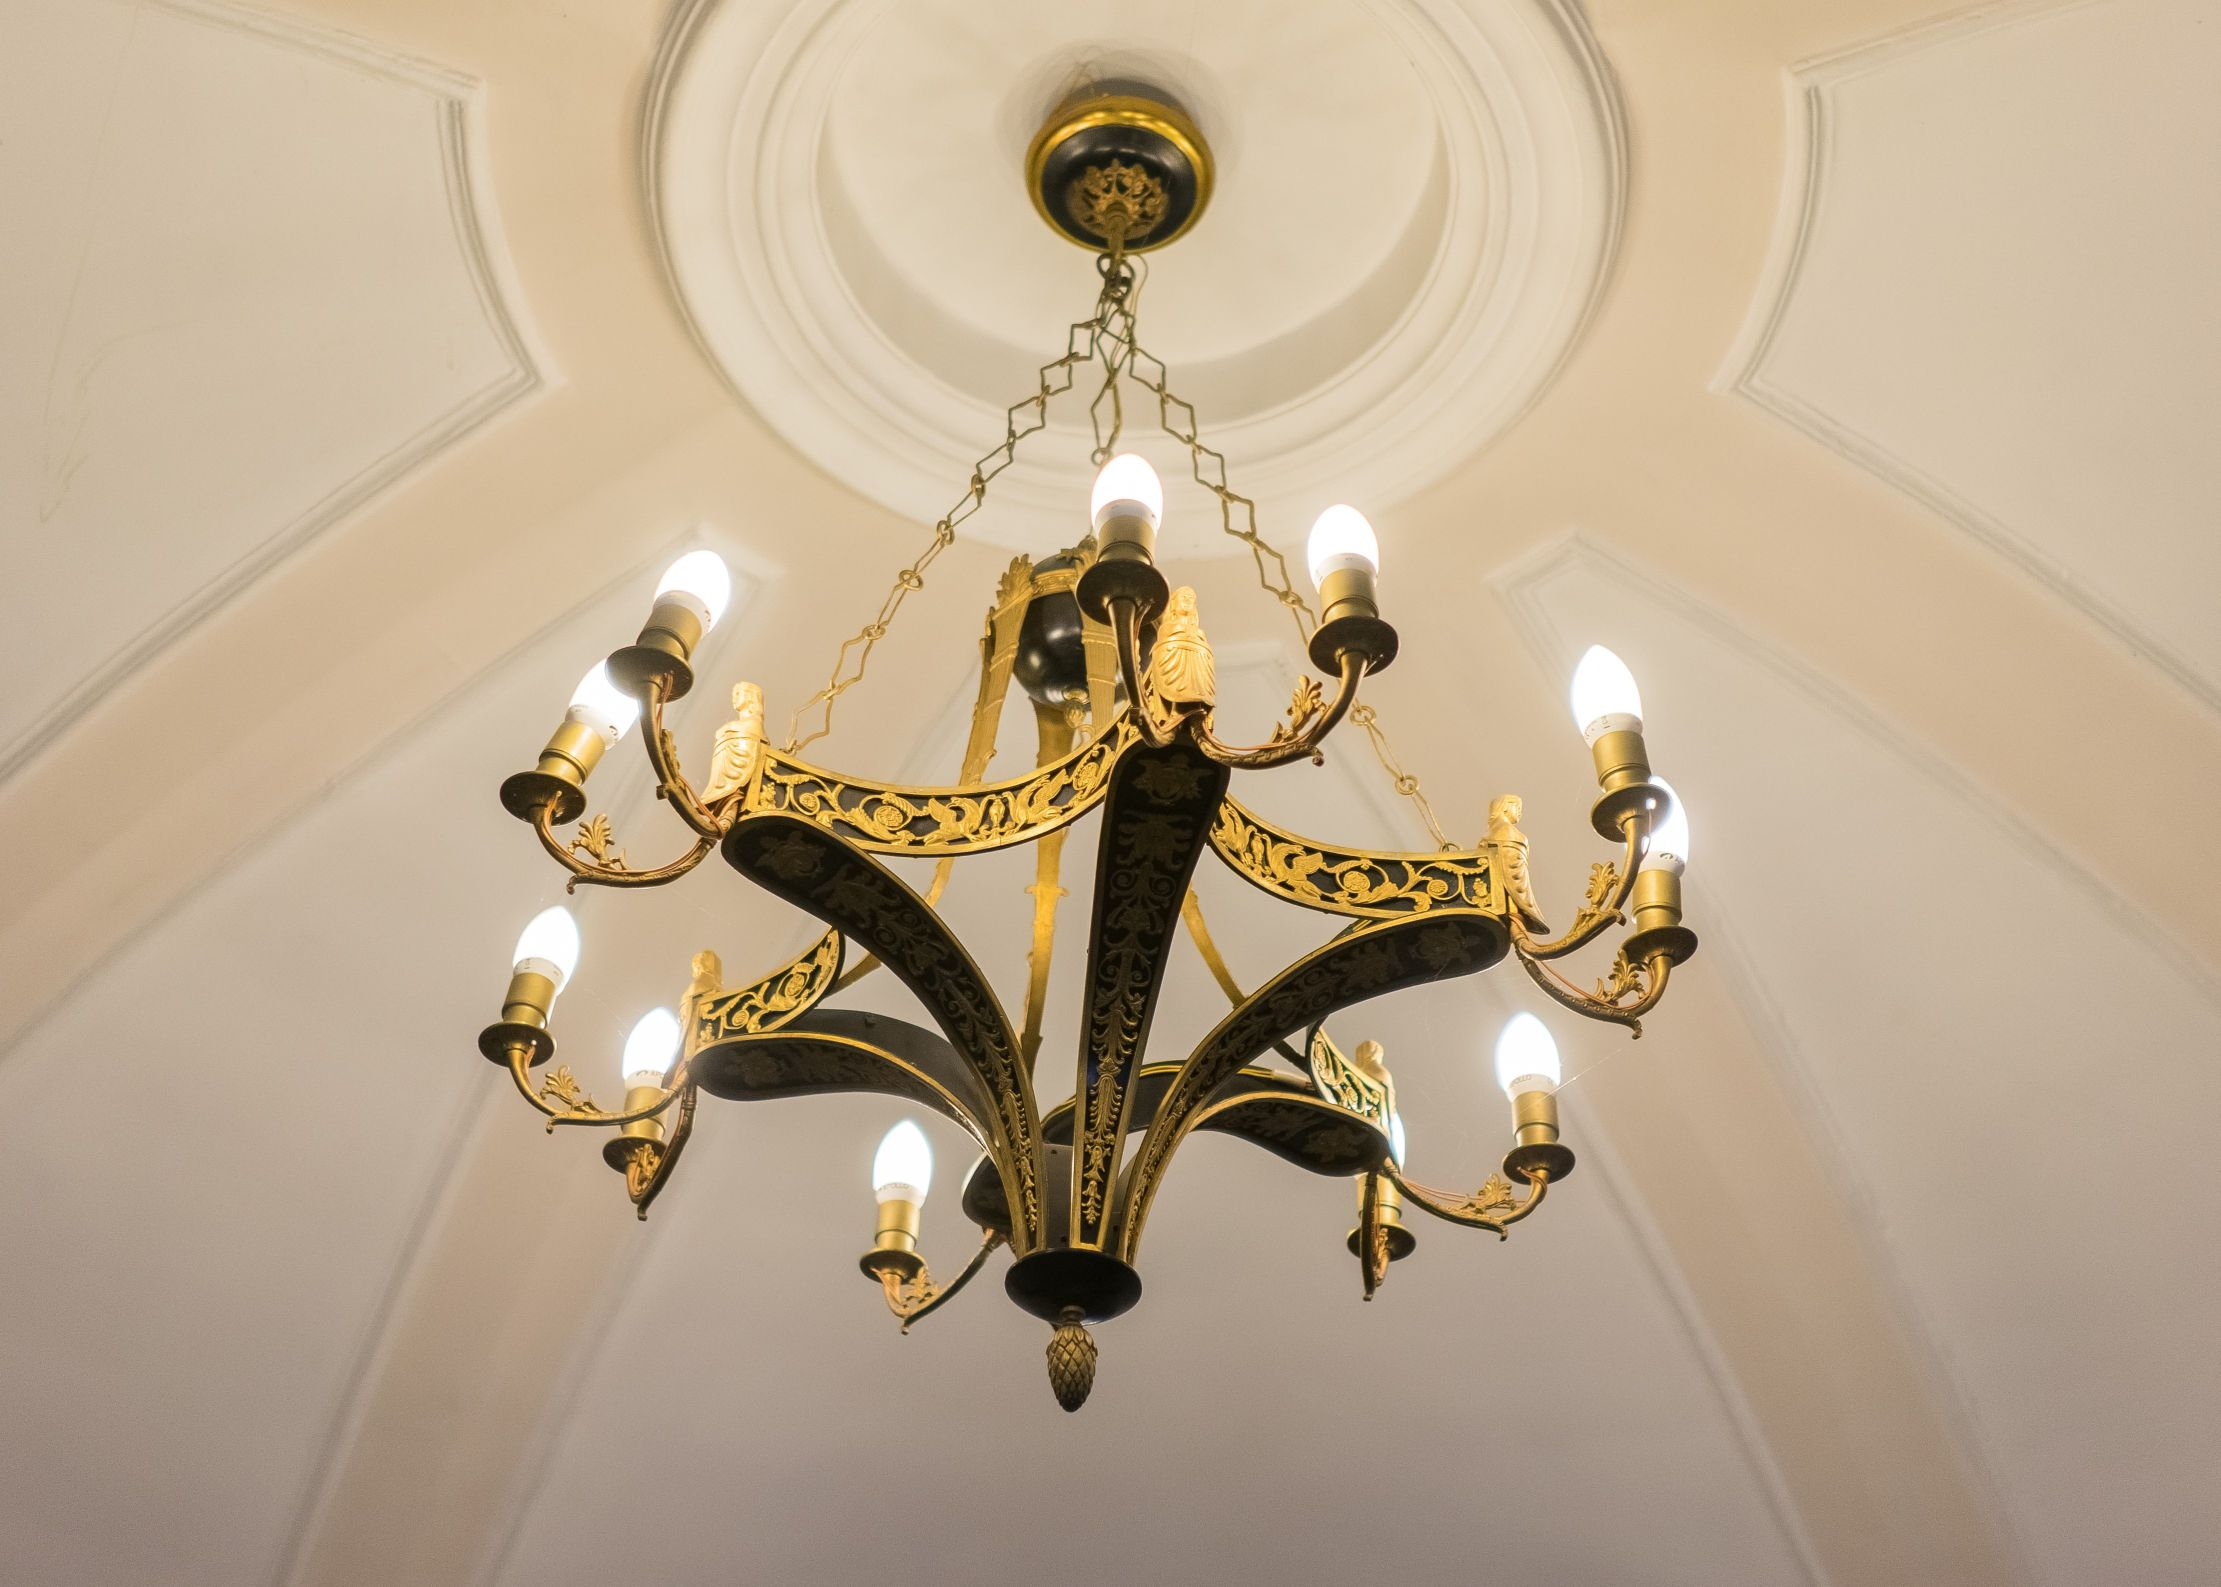 Chandelier, 1800–1849, Archdiocese of Vilnius. Photo by Povilas Jarmala, 2017